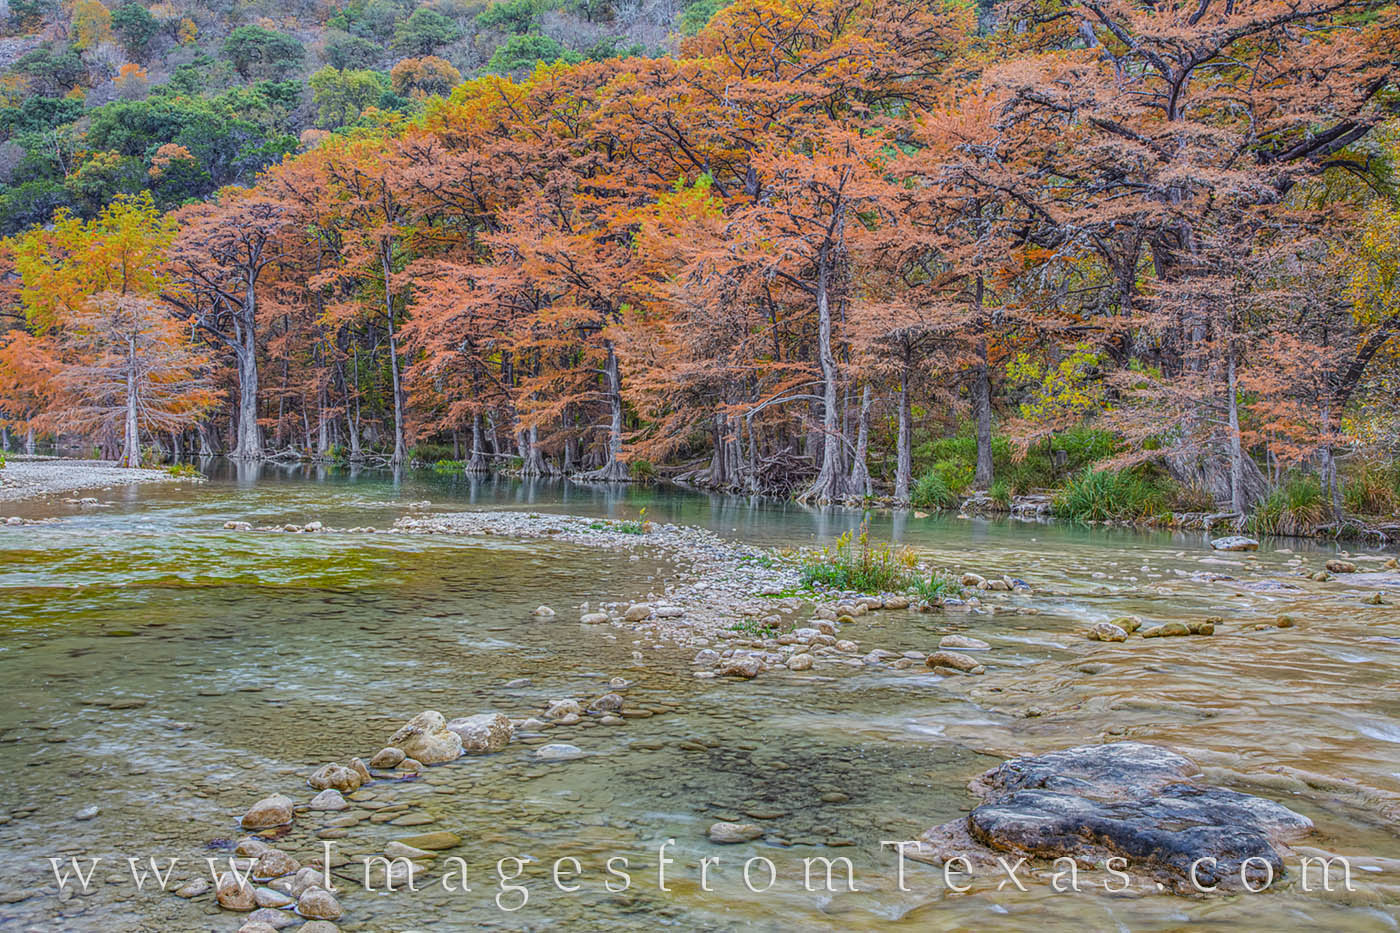 Cypress trees stand along the banks of the Frio River in November, their fall colors on full display. Taken on a cool and cloudy...